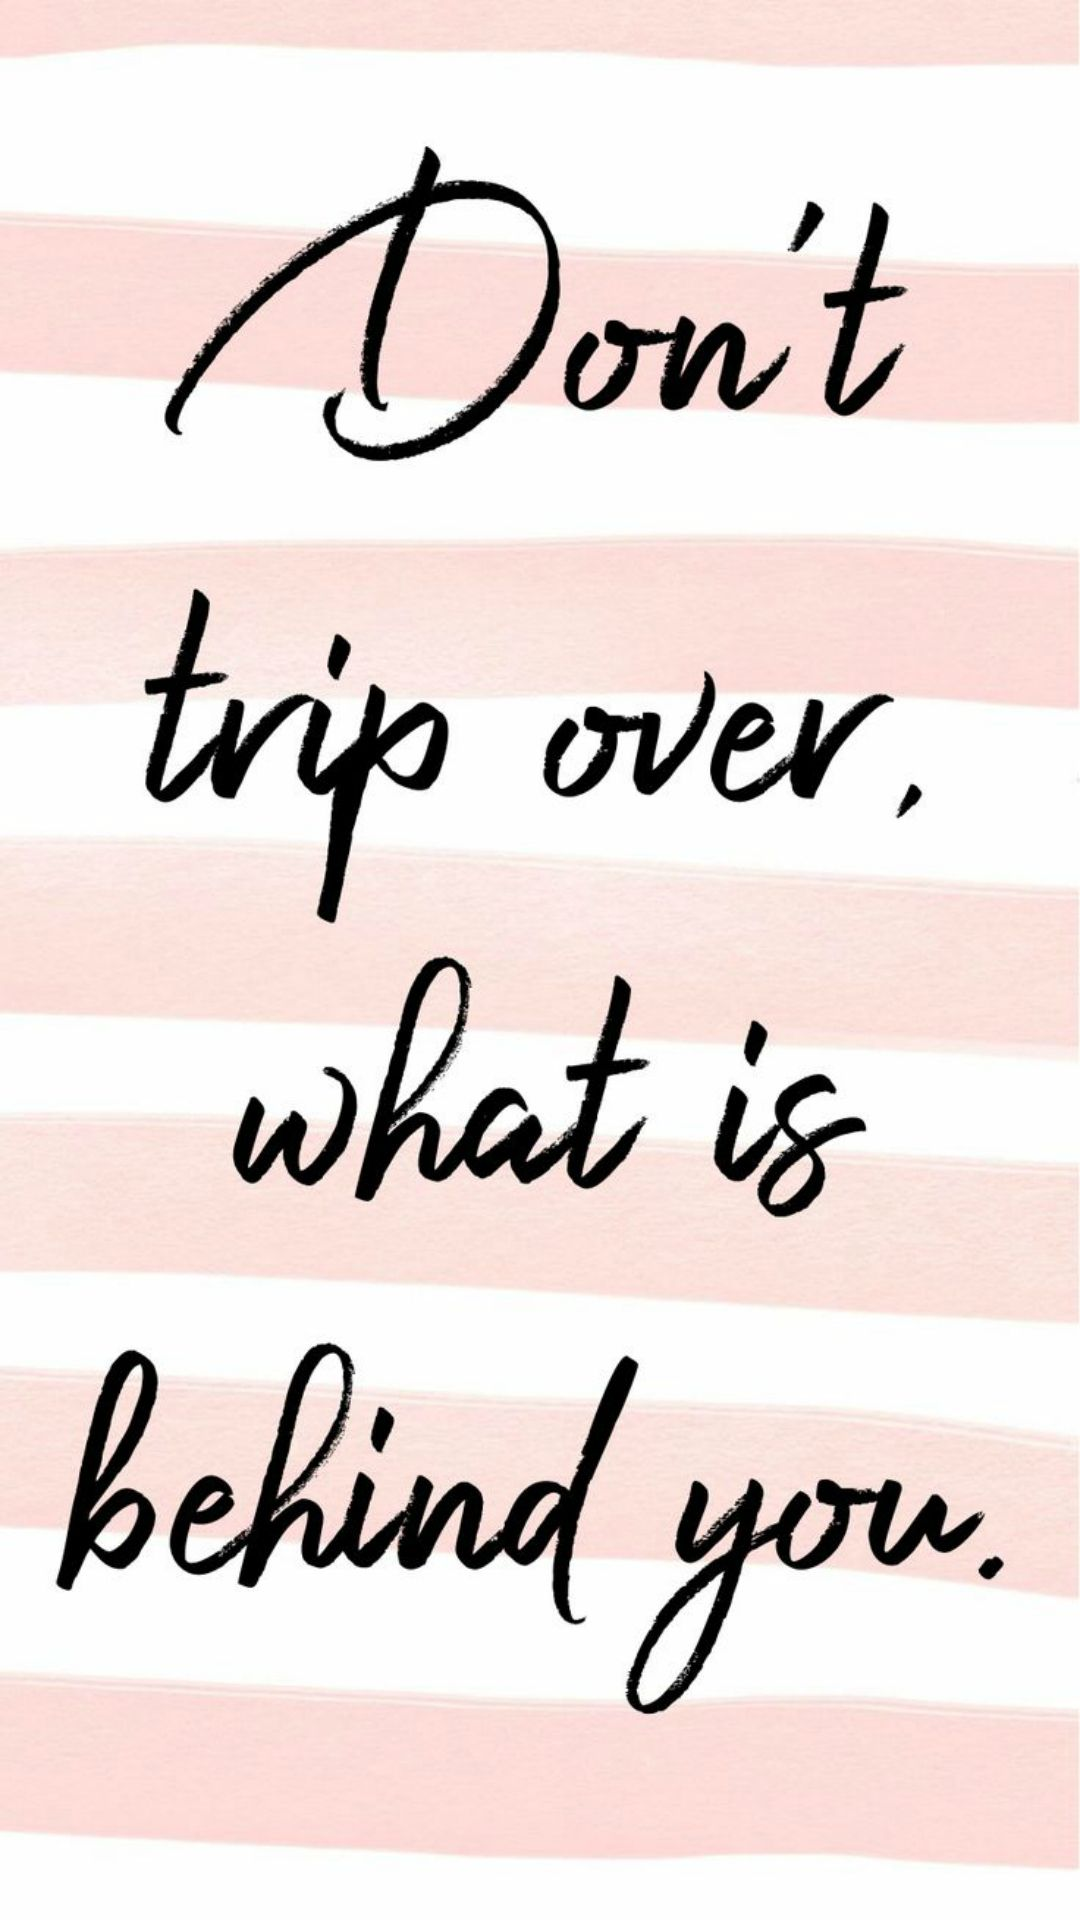 Phone wallpapers phone backgrounds quotes to live by free